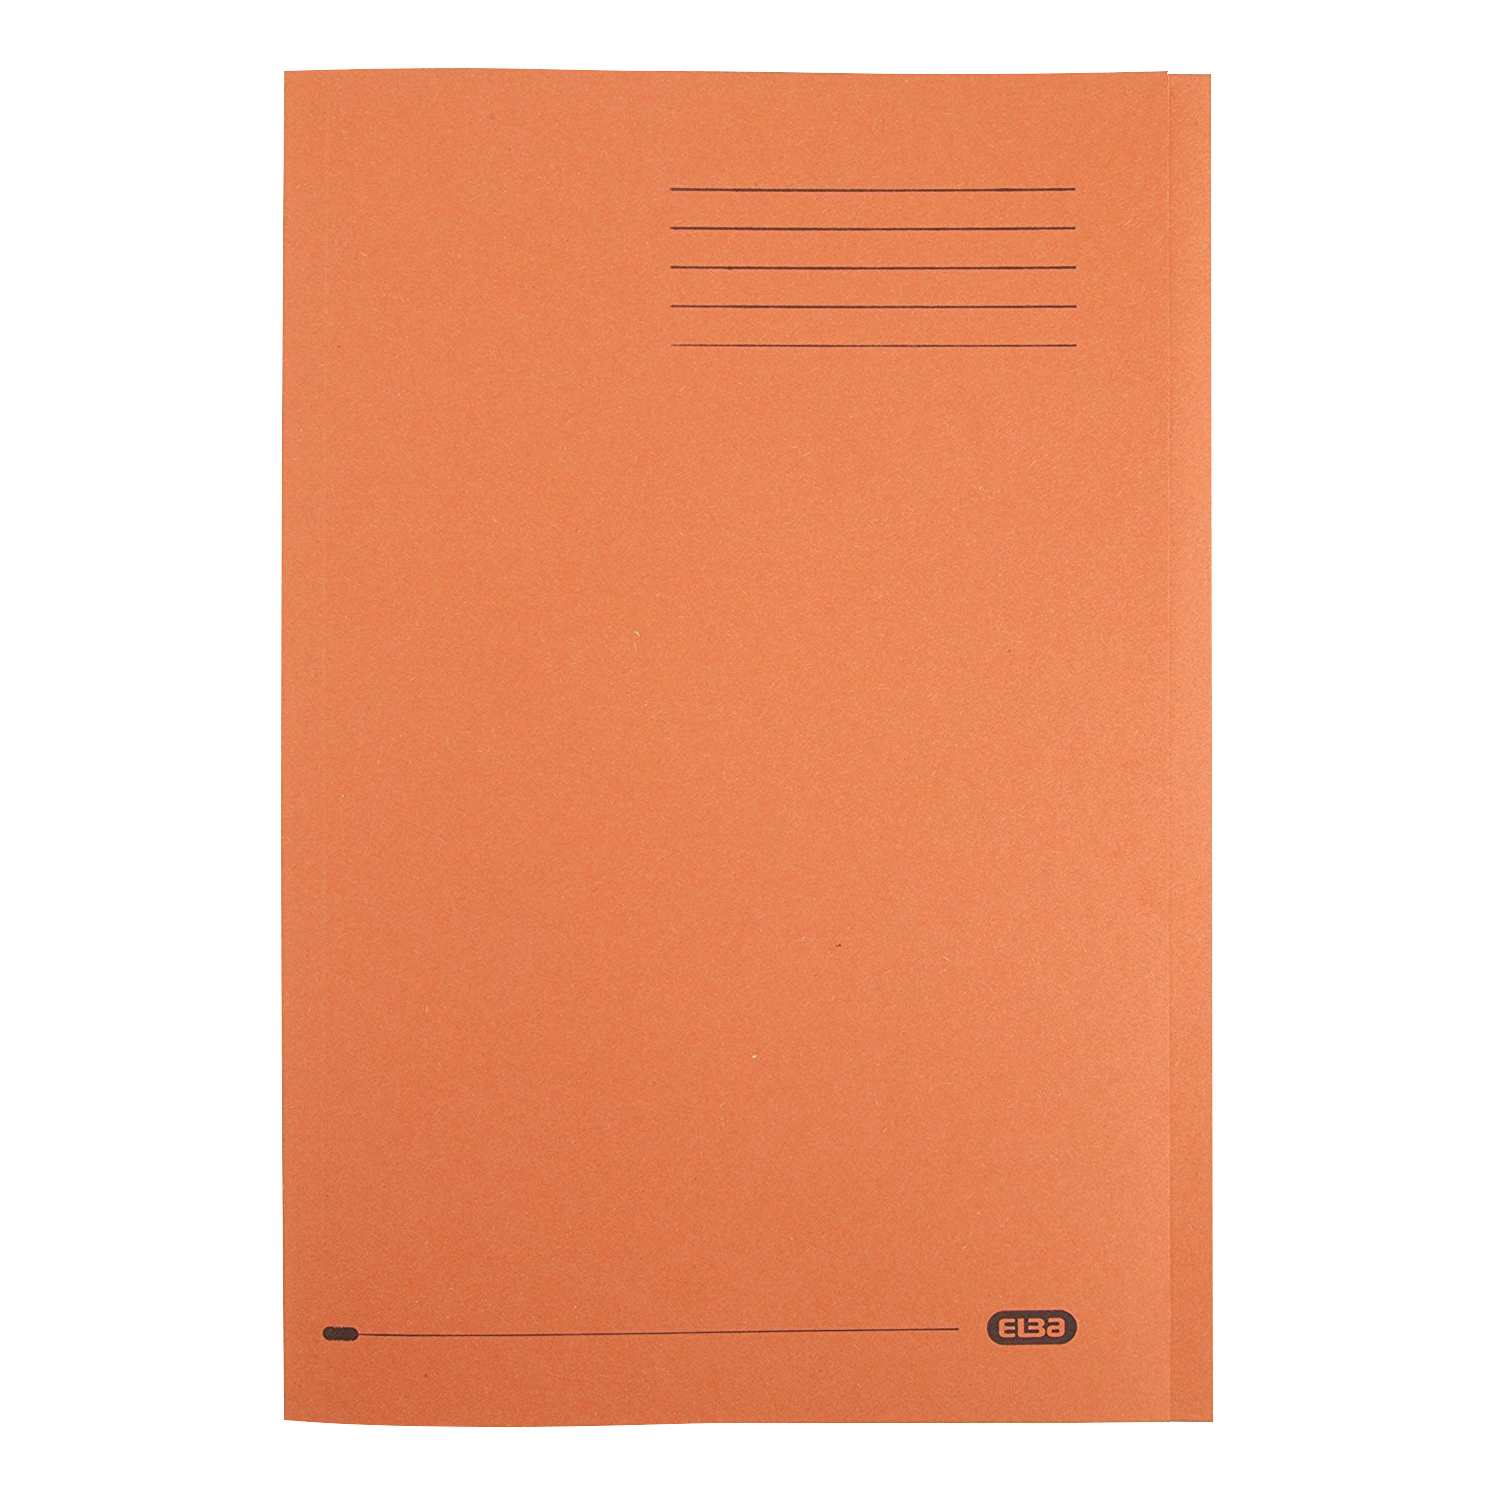 Elba Foolscap Square Cut Folder Recycled Mediumweight 285gsm Manilla Orange Ref 100090220 Pack 100